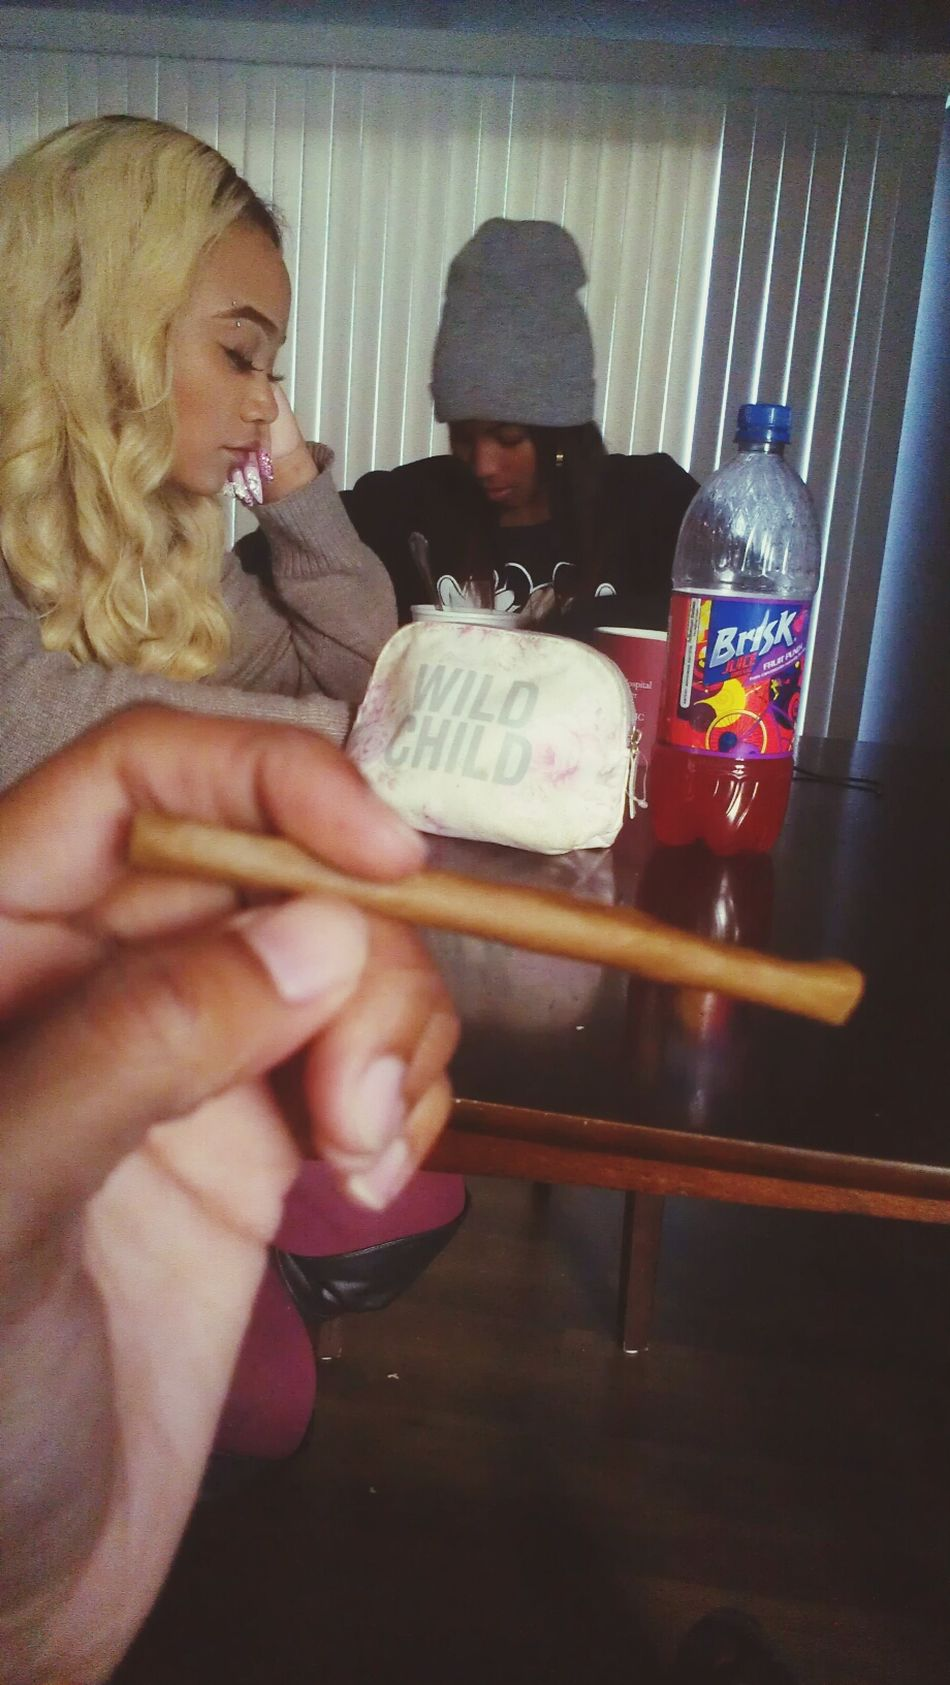 the blunt is nice . I <3 Mary Jane  Shaded Blunt Anyone?